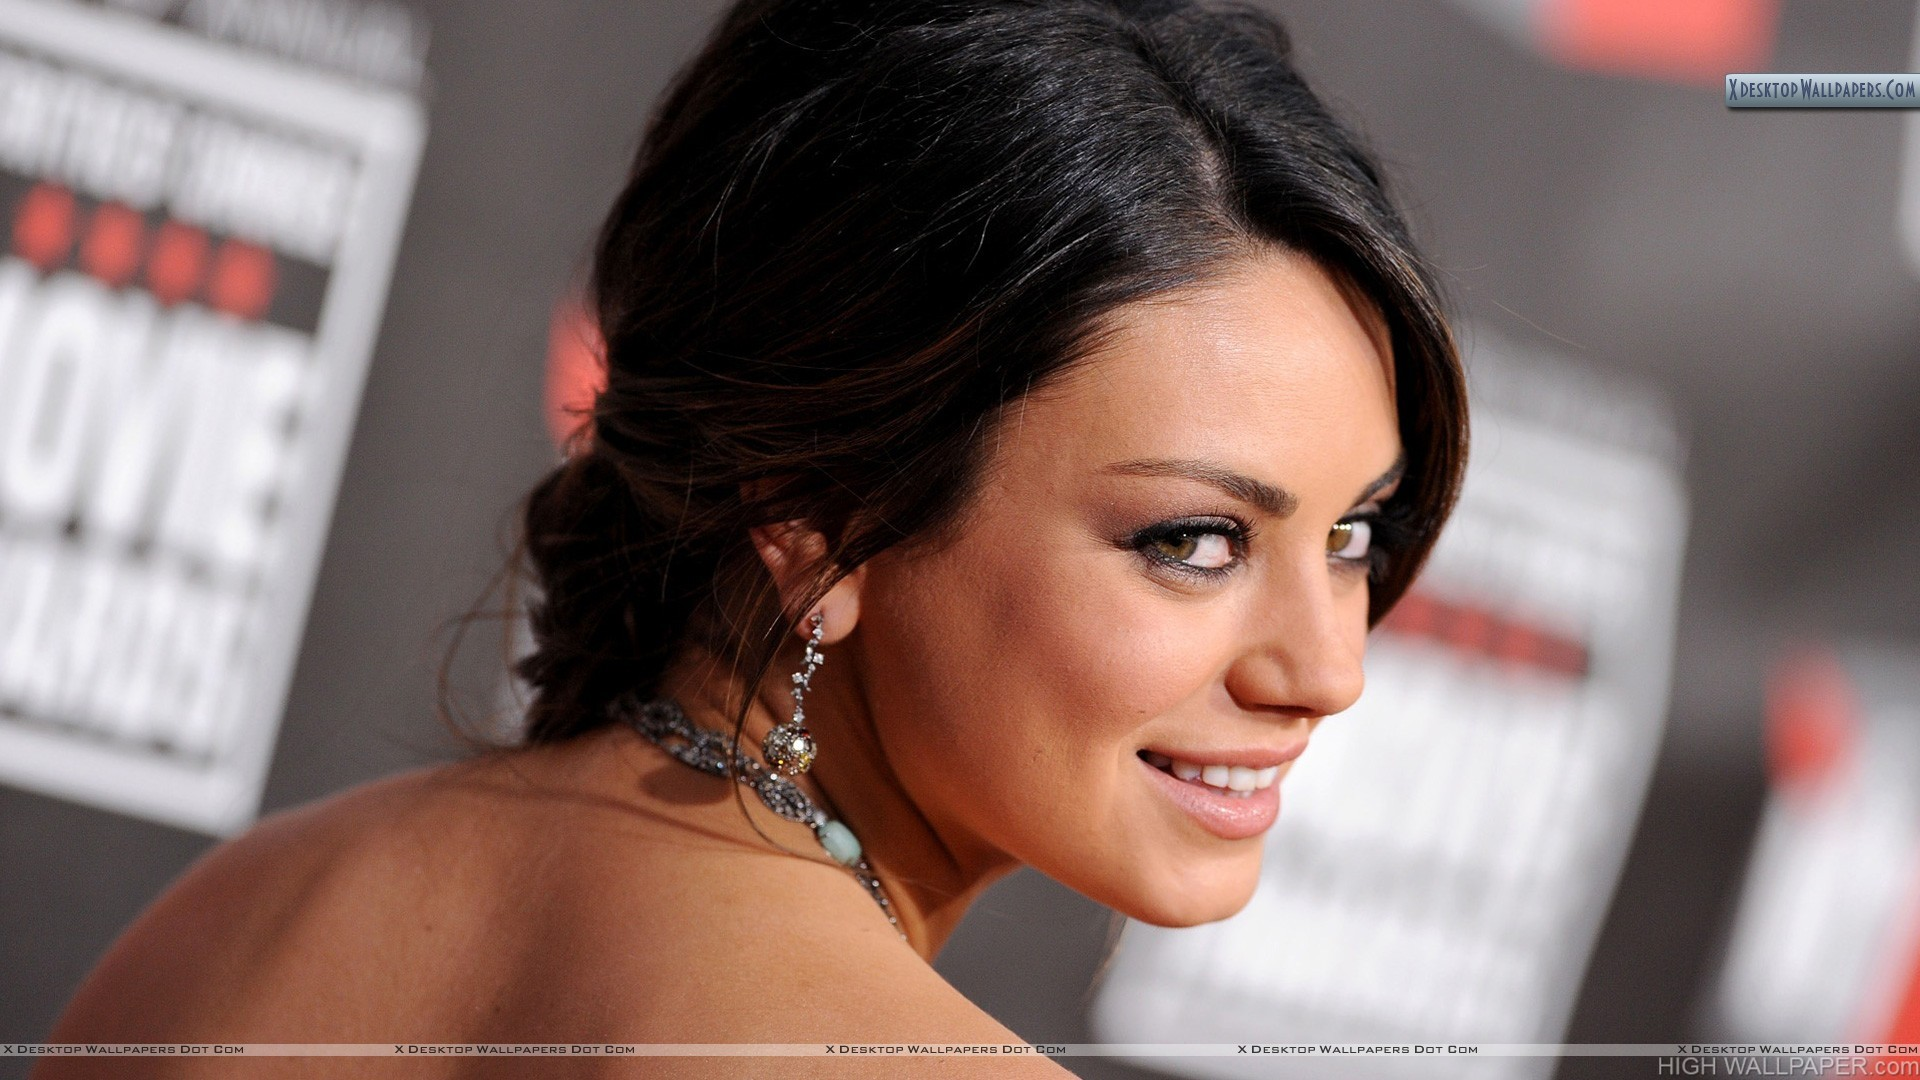 Mila Kunis Smiling Looking Back Side Face Closeup